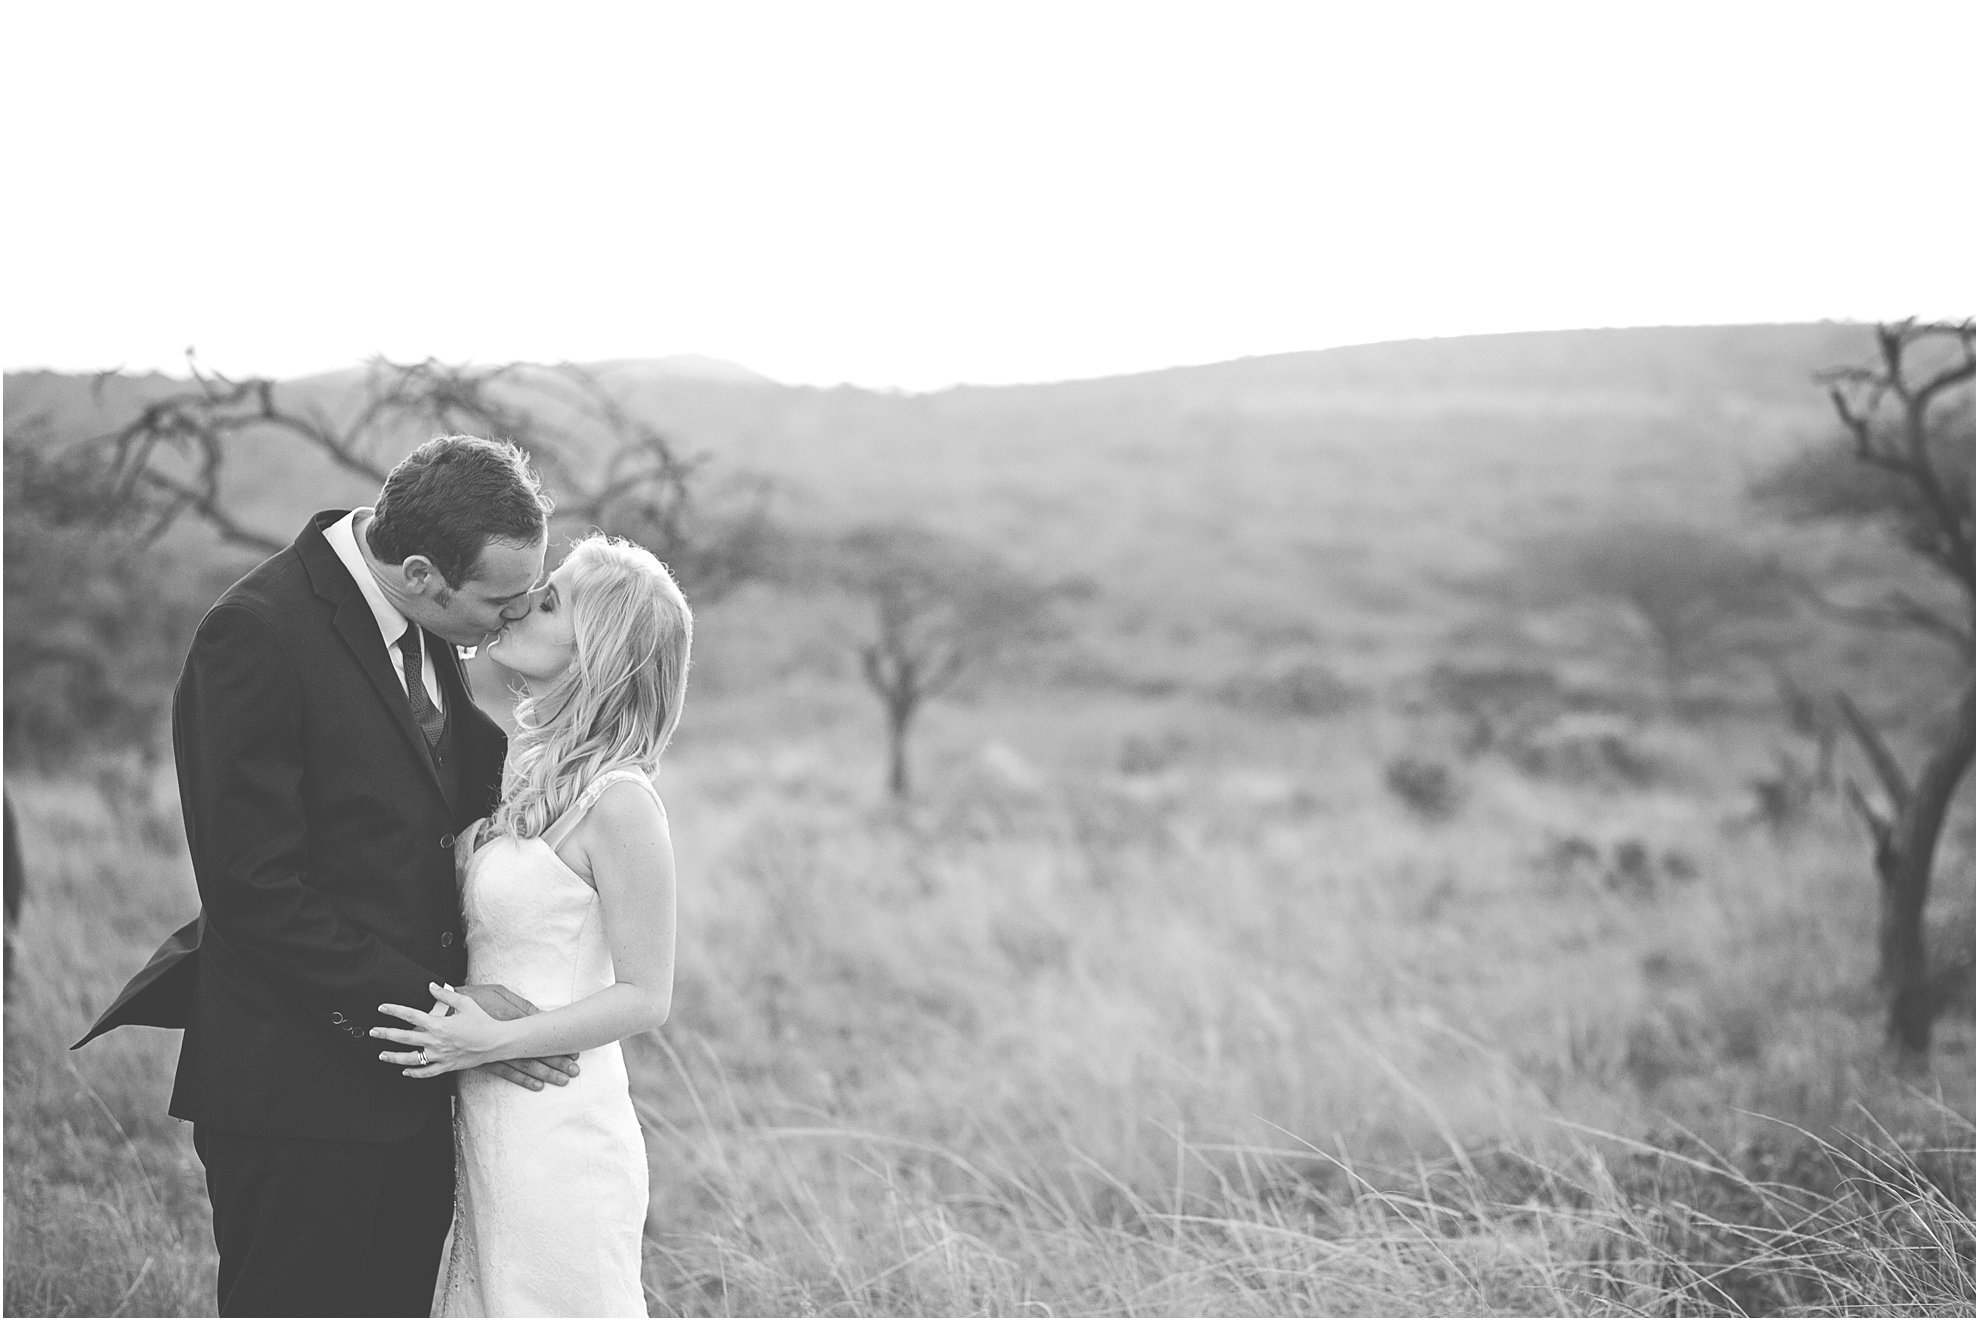 FIONA CLAIR PHOTOGRAPHY Jean & Natalie Swart 01 06 2013_0098